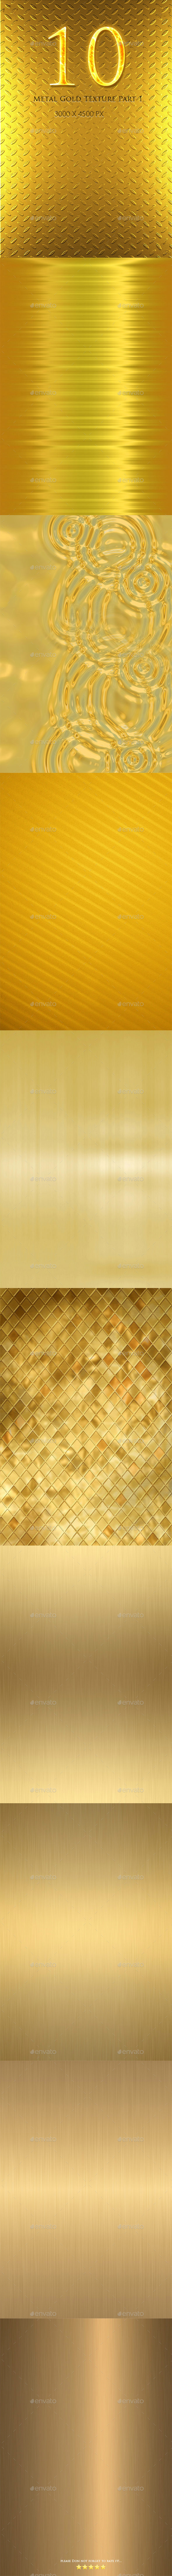 10 Metal Gold Texture Part 1